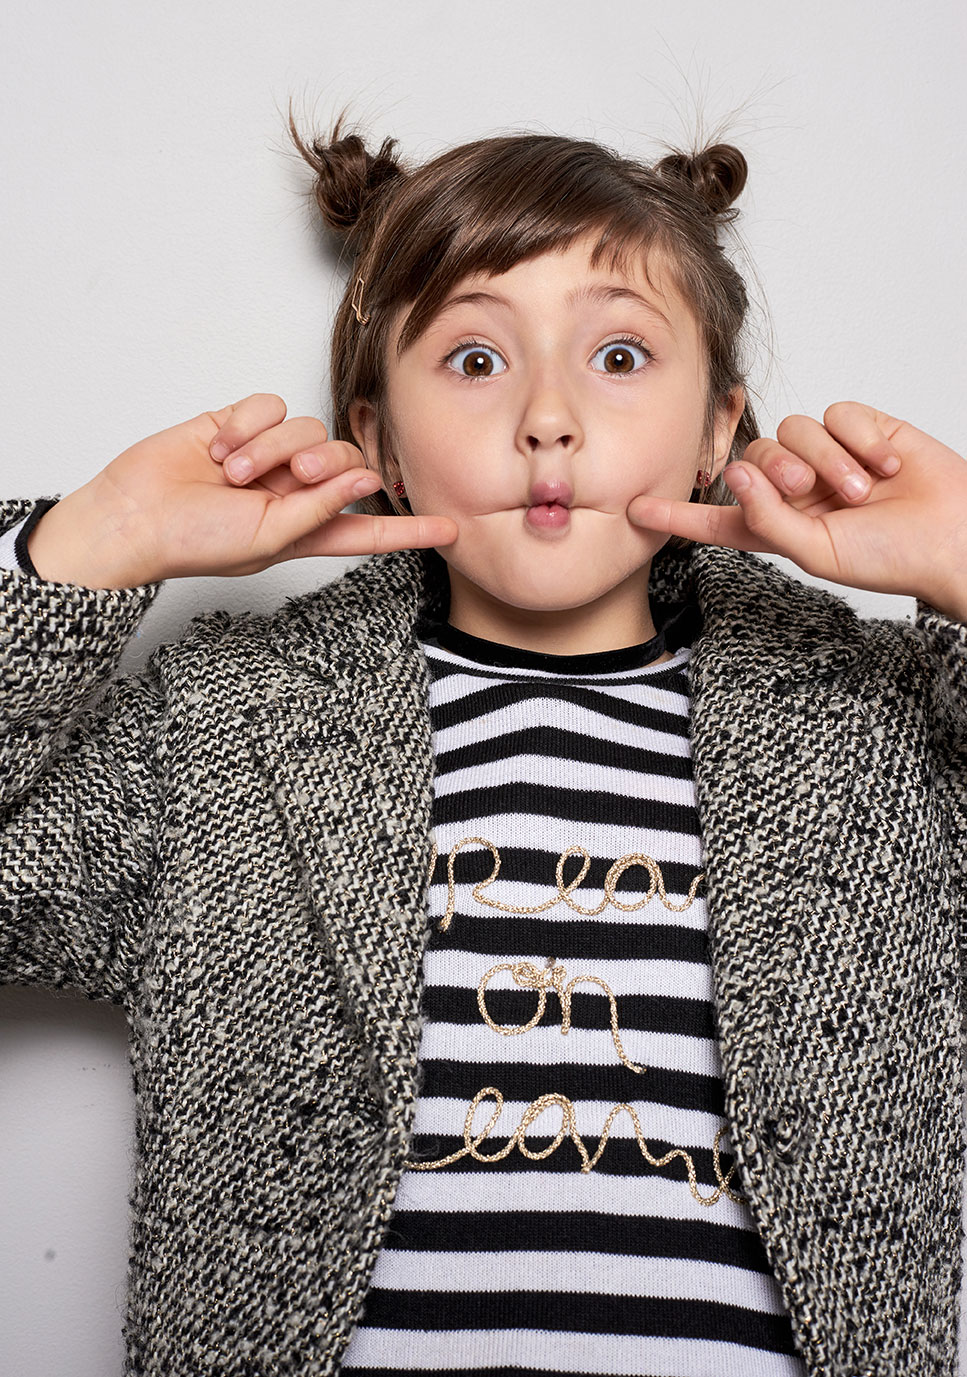 Cat-Larsen-Kids-Fashion-Photographer-11